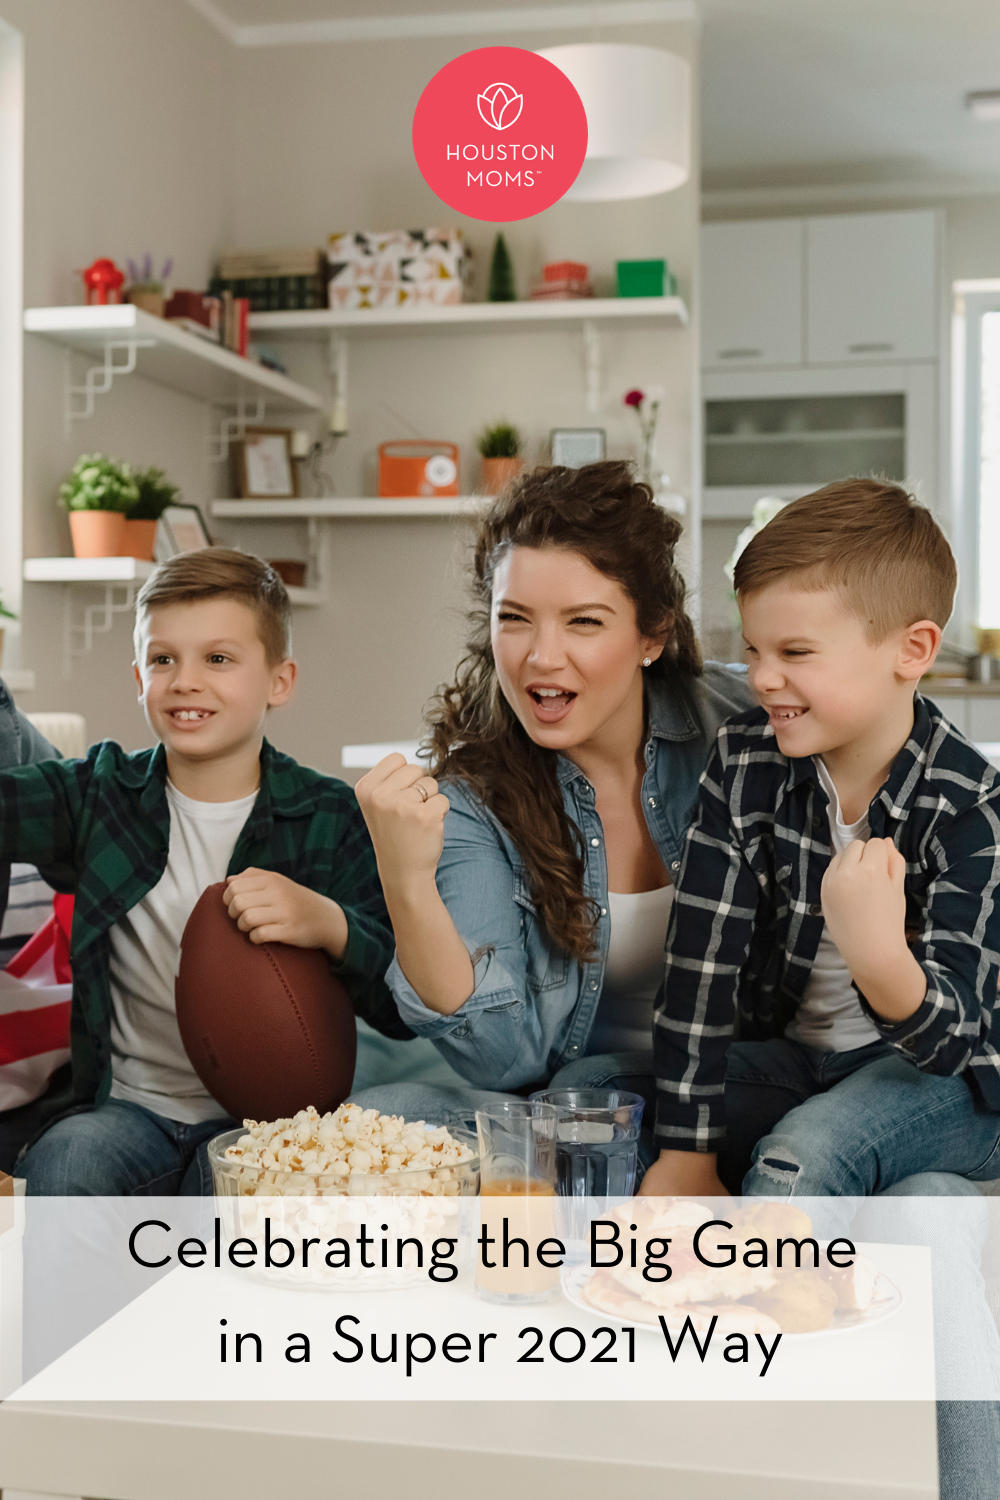 """Houston Moms """"Celebrating the Big Game in a Super 2021 Way"""" #houstonmoms #houstonmomsblog #momsaroundhouston"""